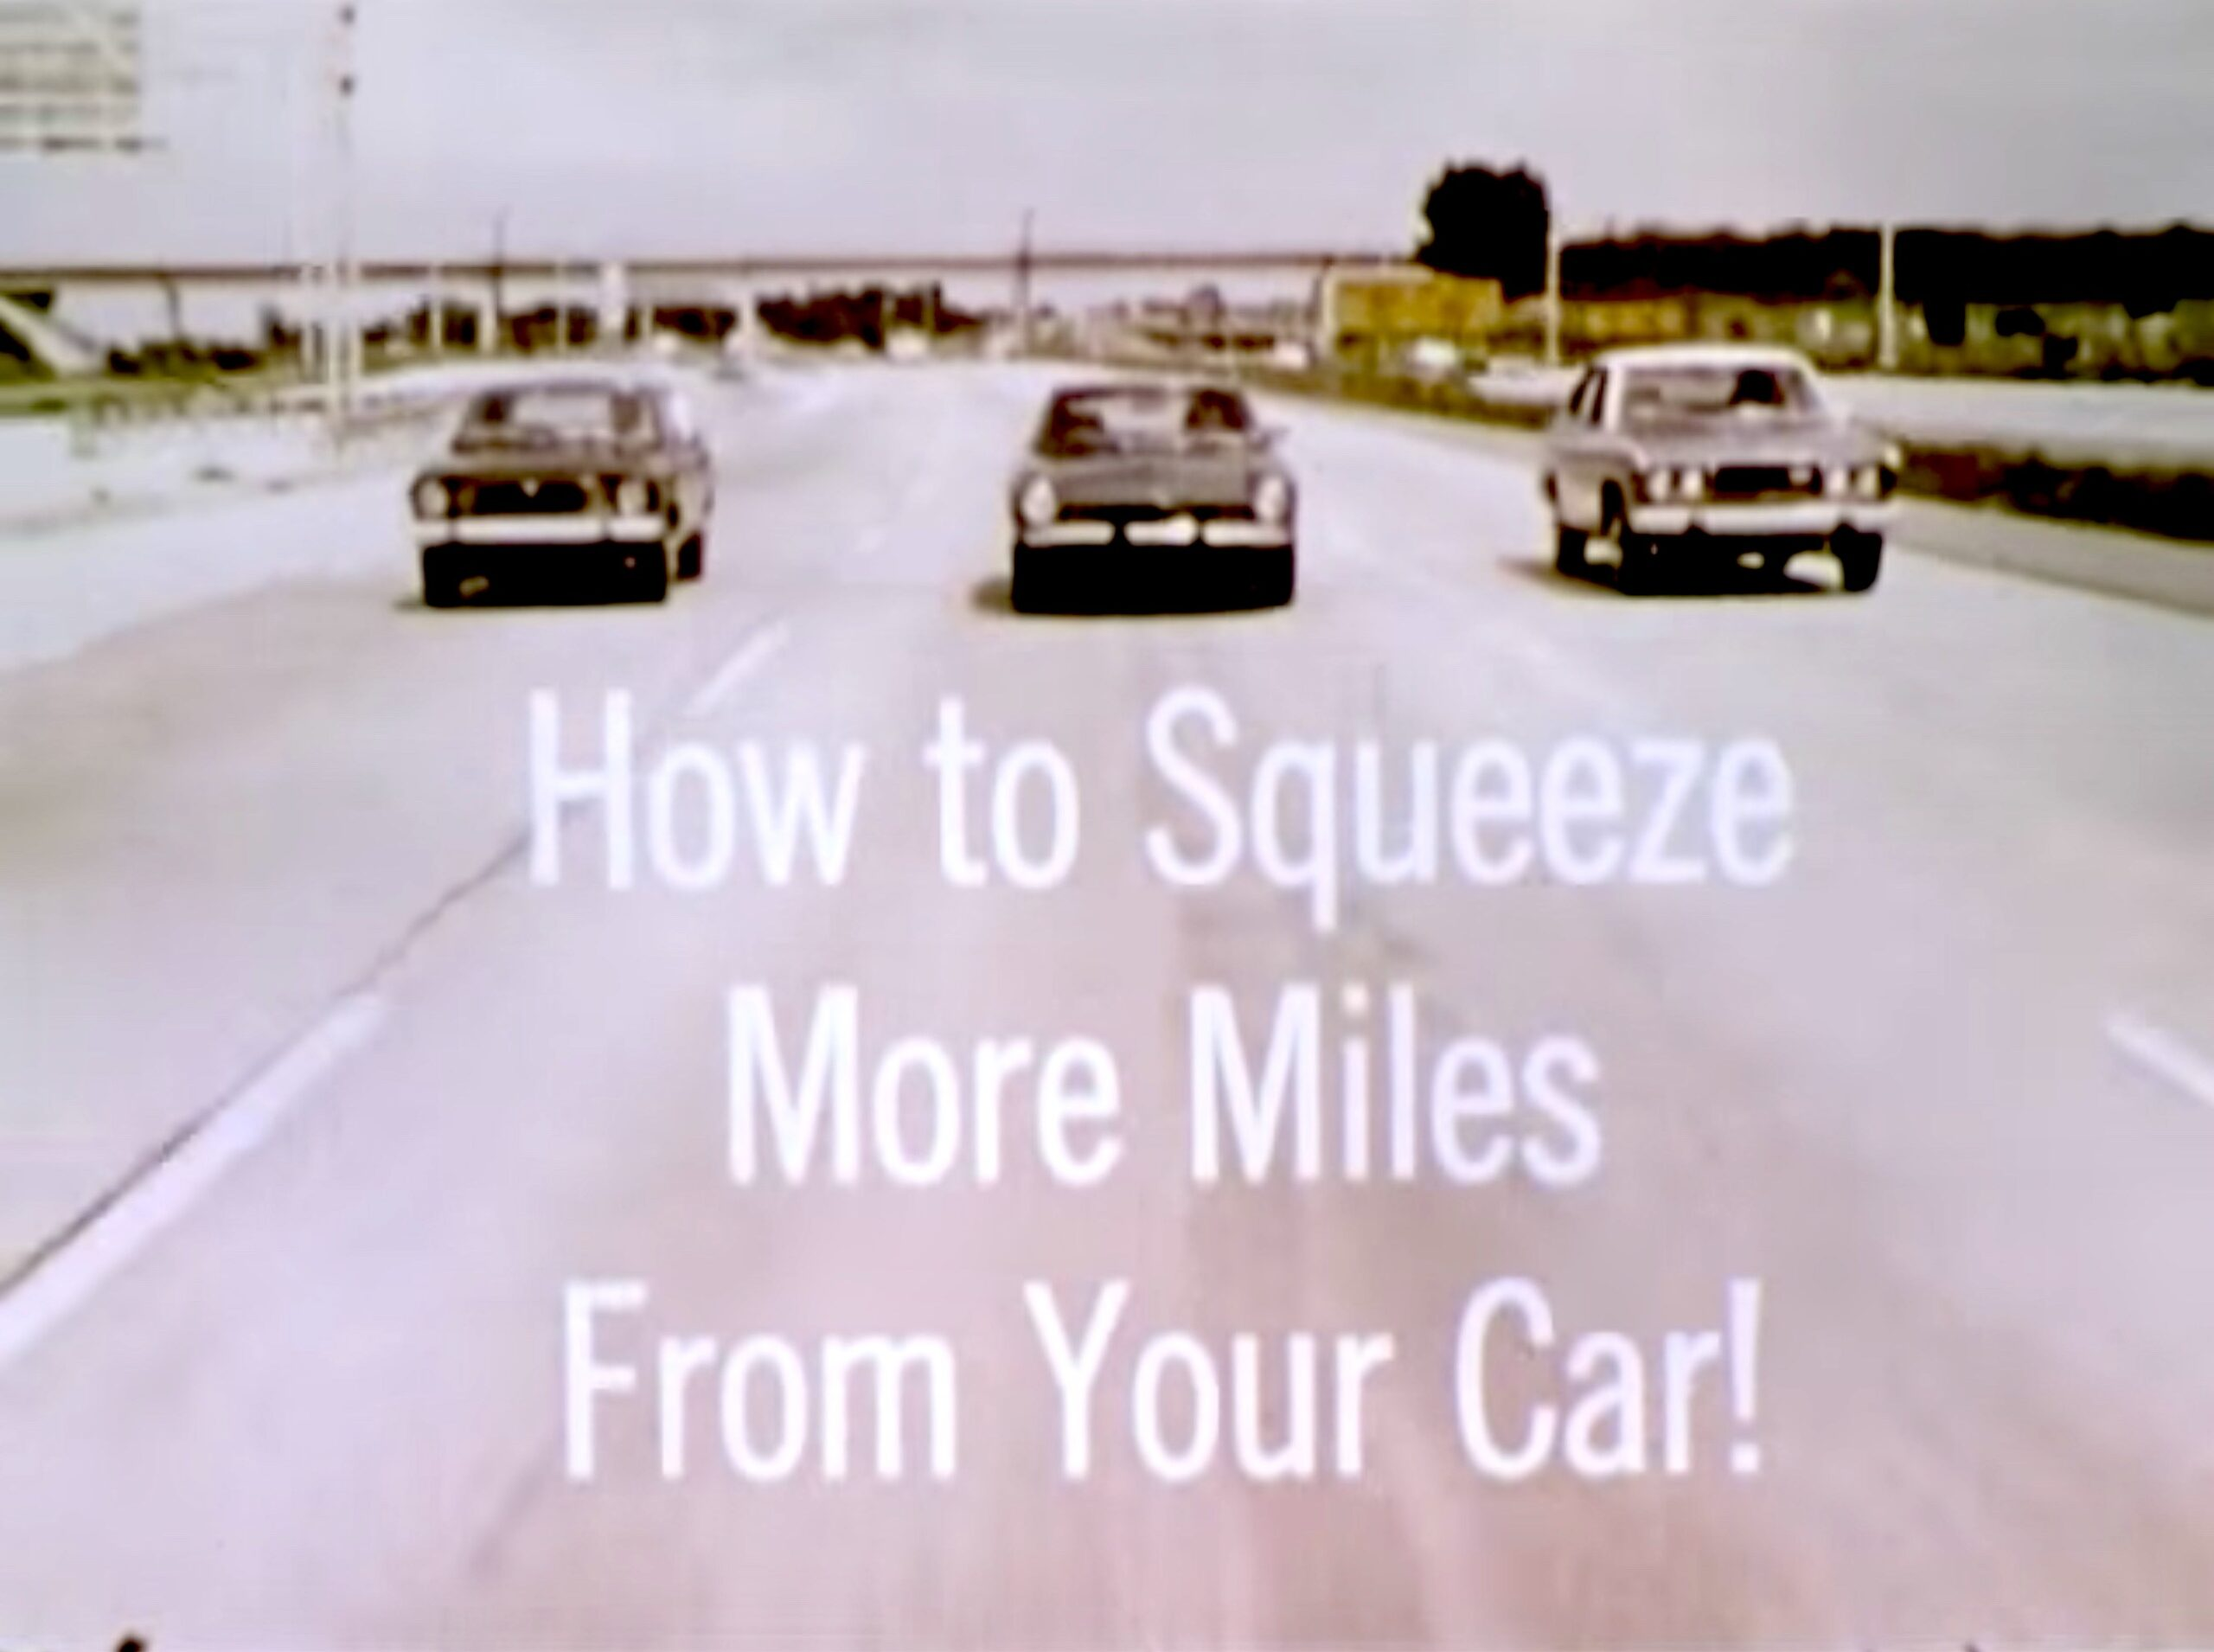 How To Squeeze More Miles From Your Car